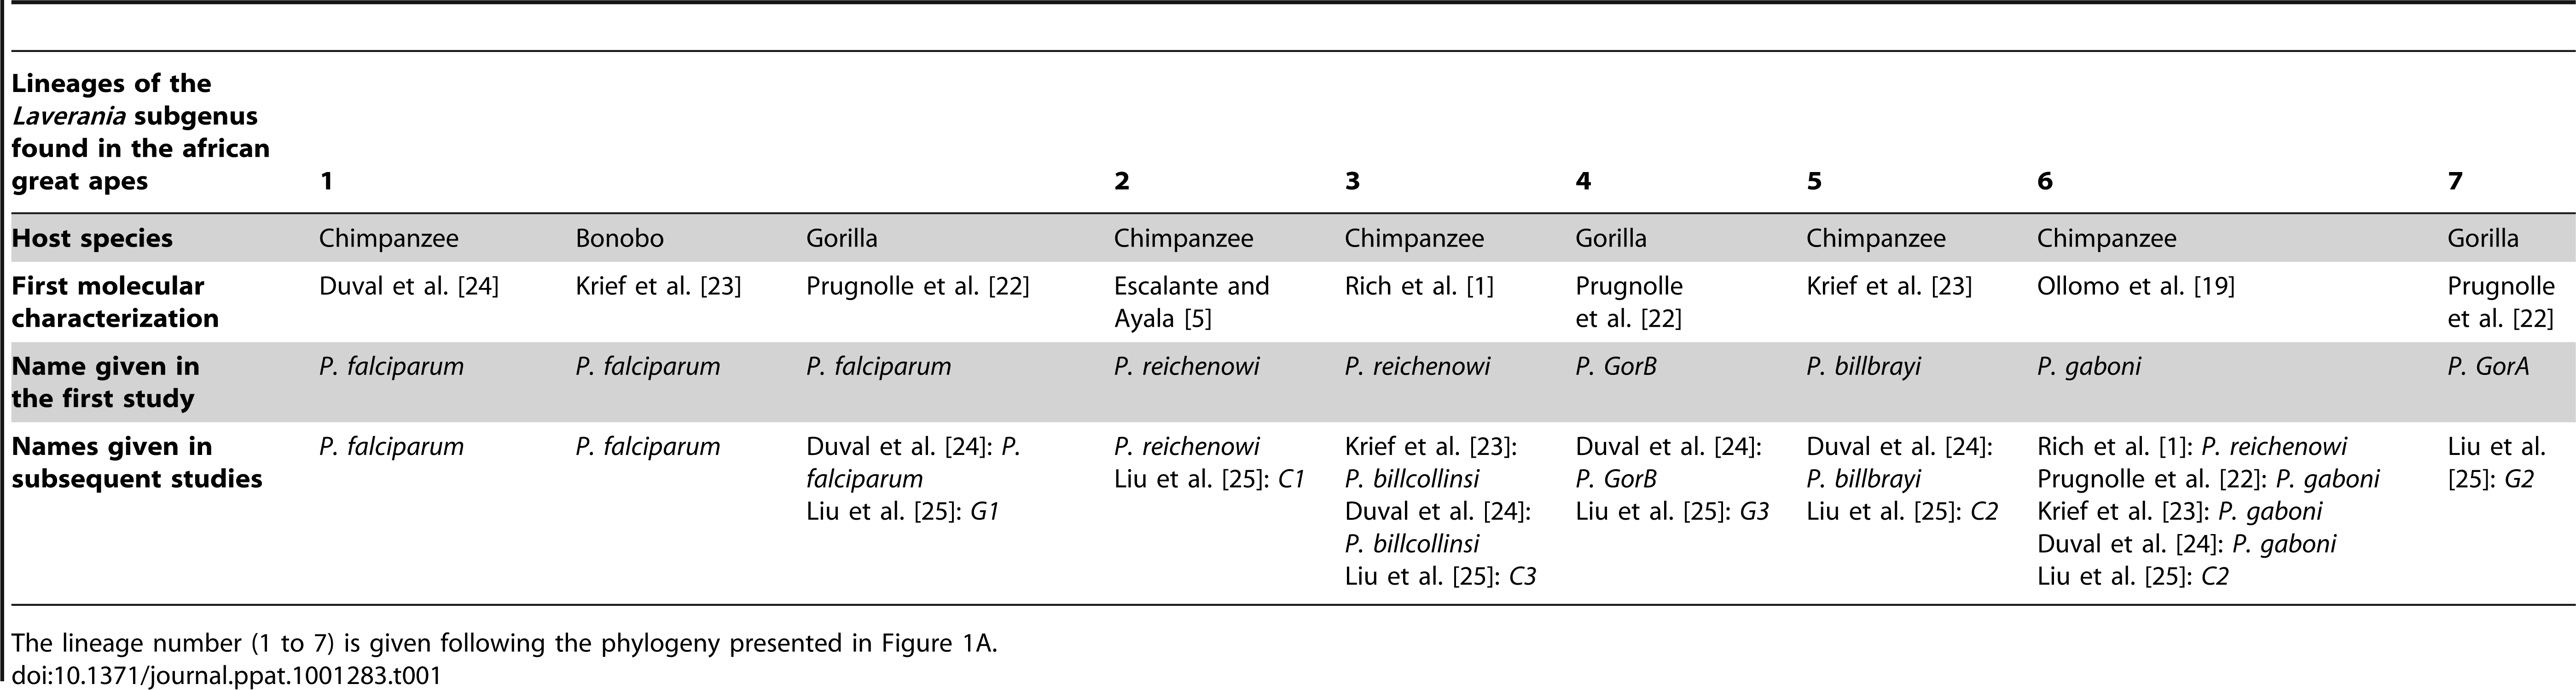 Historic overview of the molecular descriptions and of the names given to the different lineages (seven lineages) of the <i>Laverania</i> subgenus.